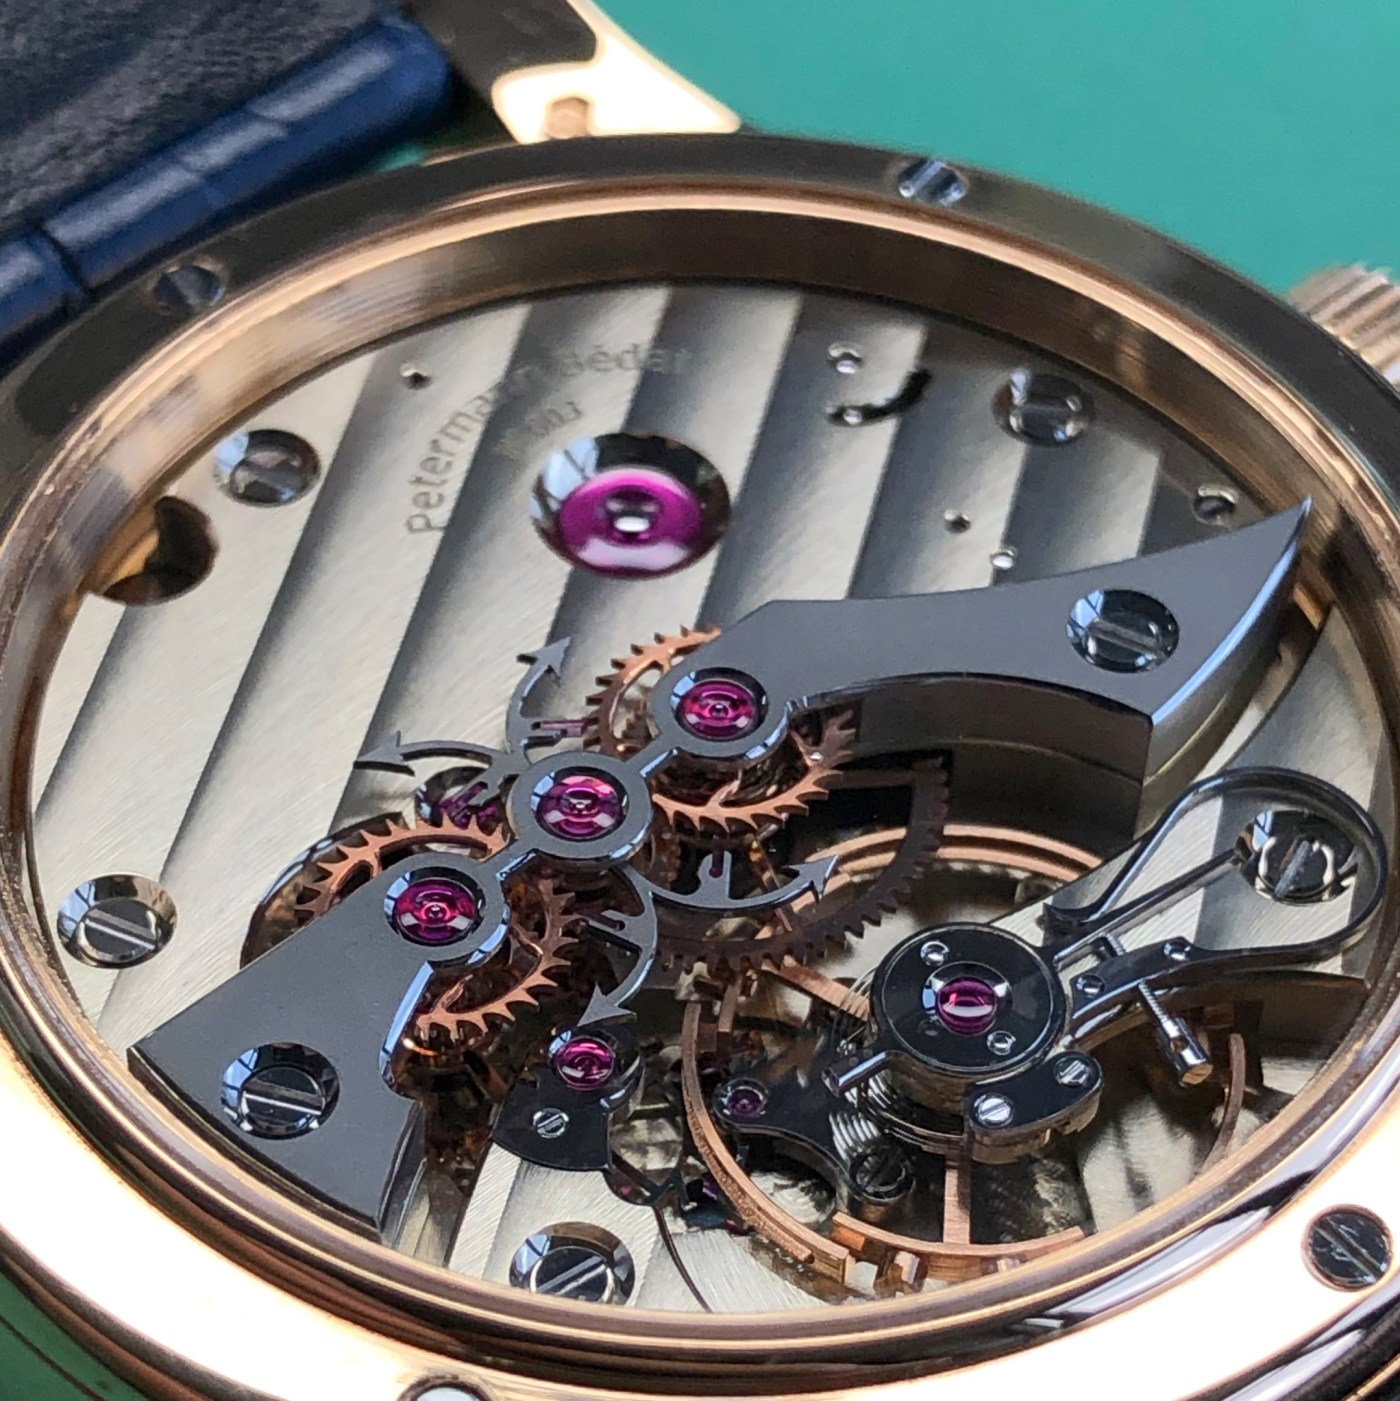 Petermann Bedat 1967 movement detail